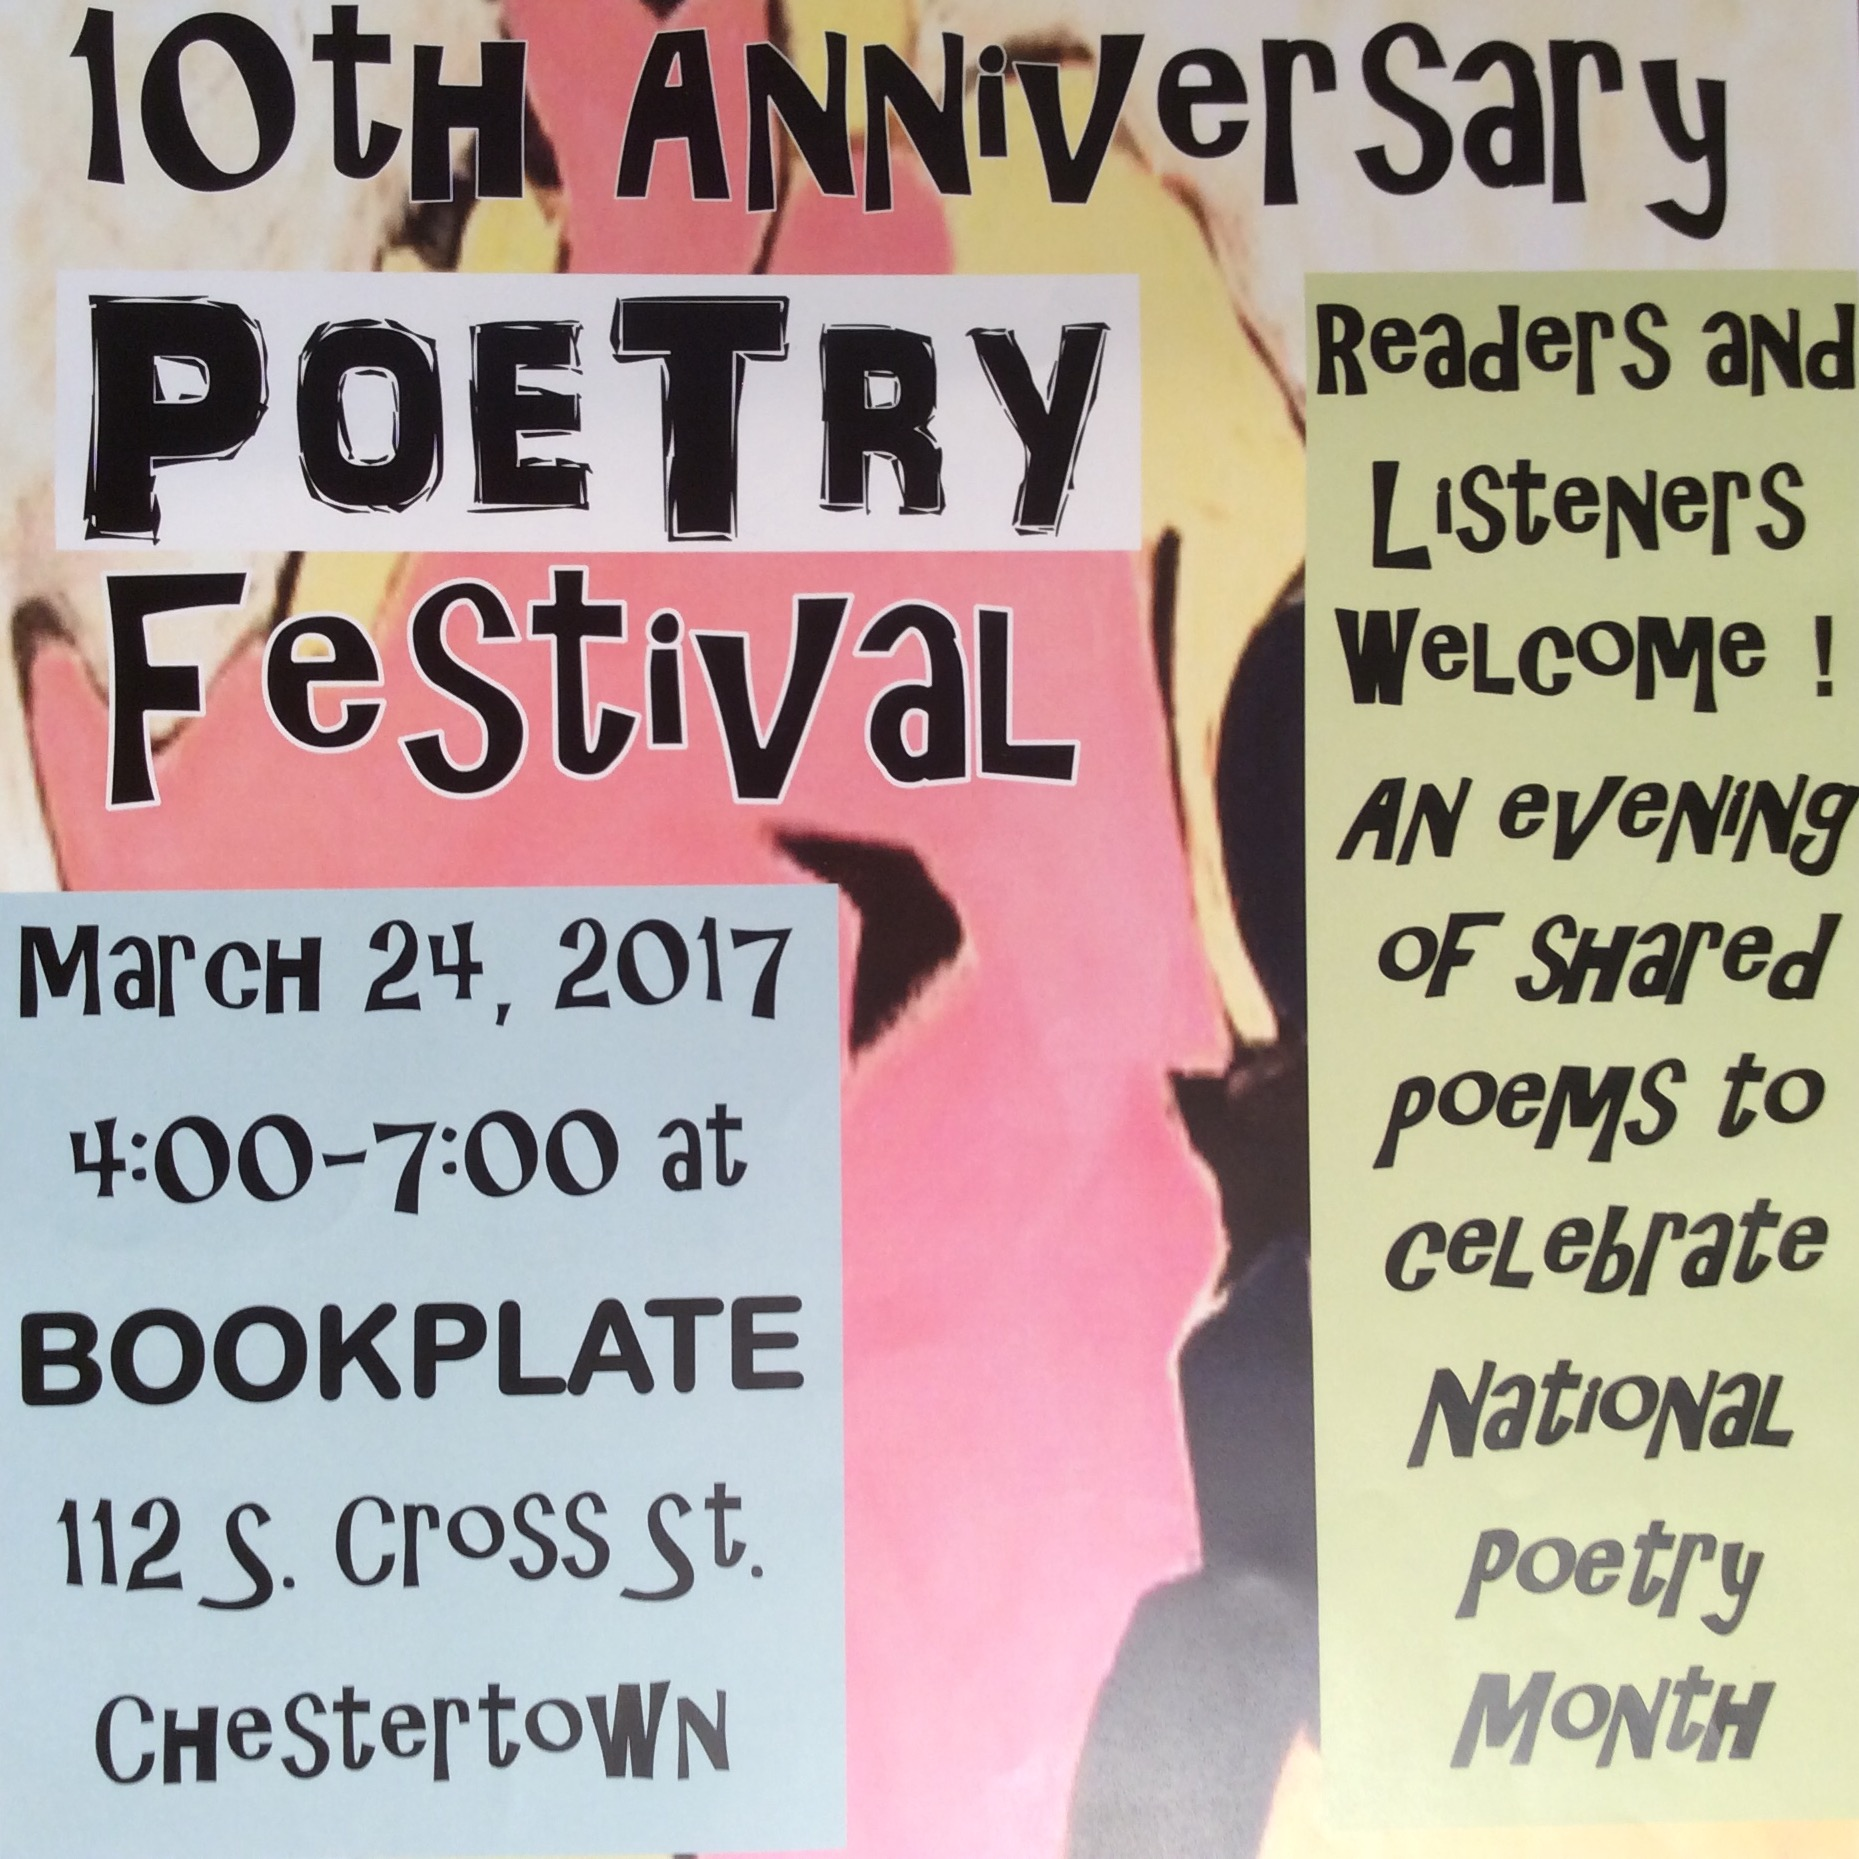 10th Anniversary Poetry Festival